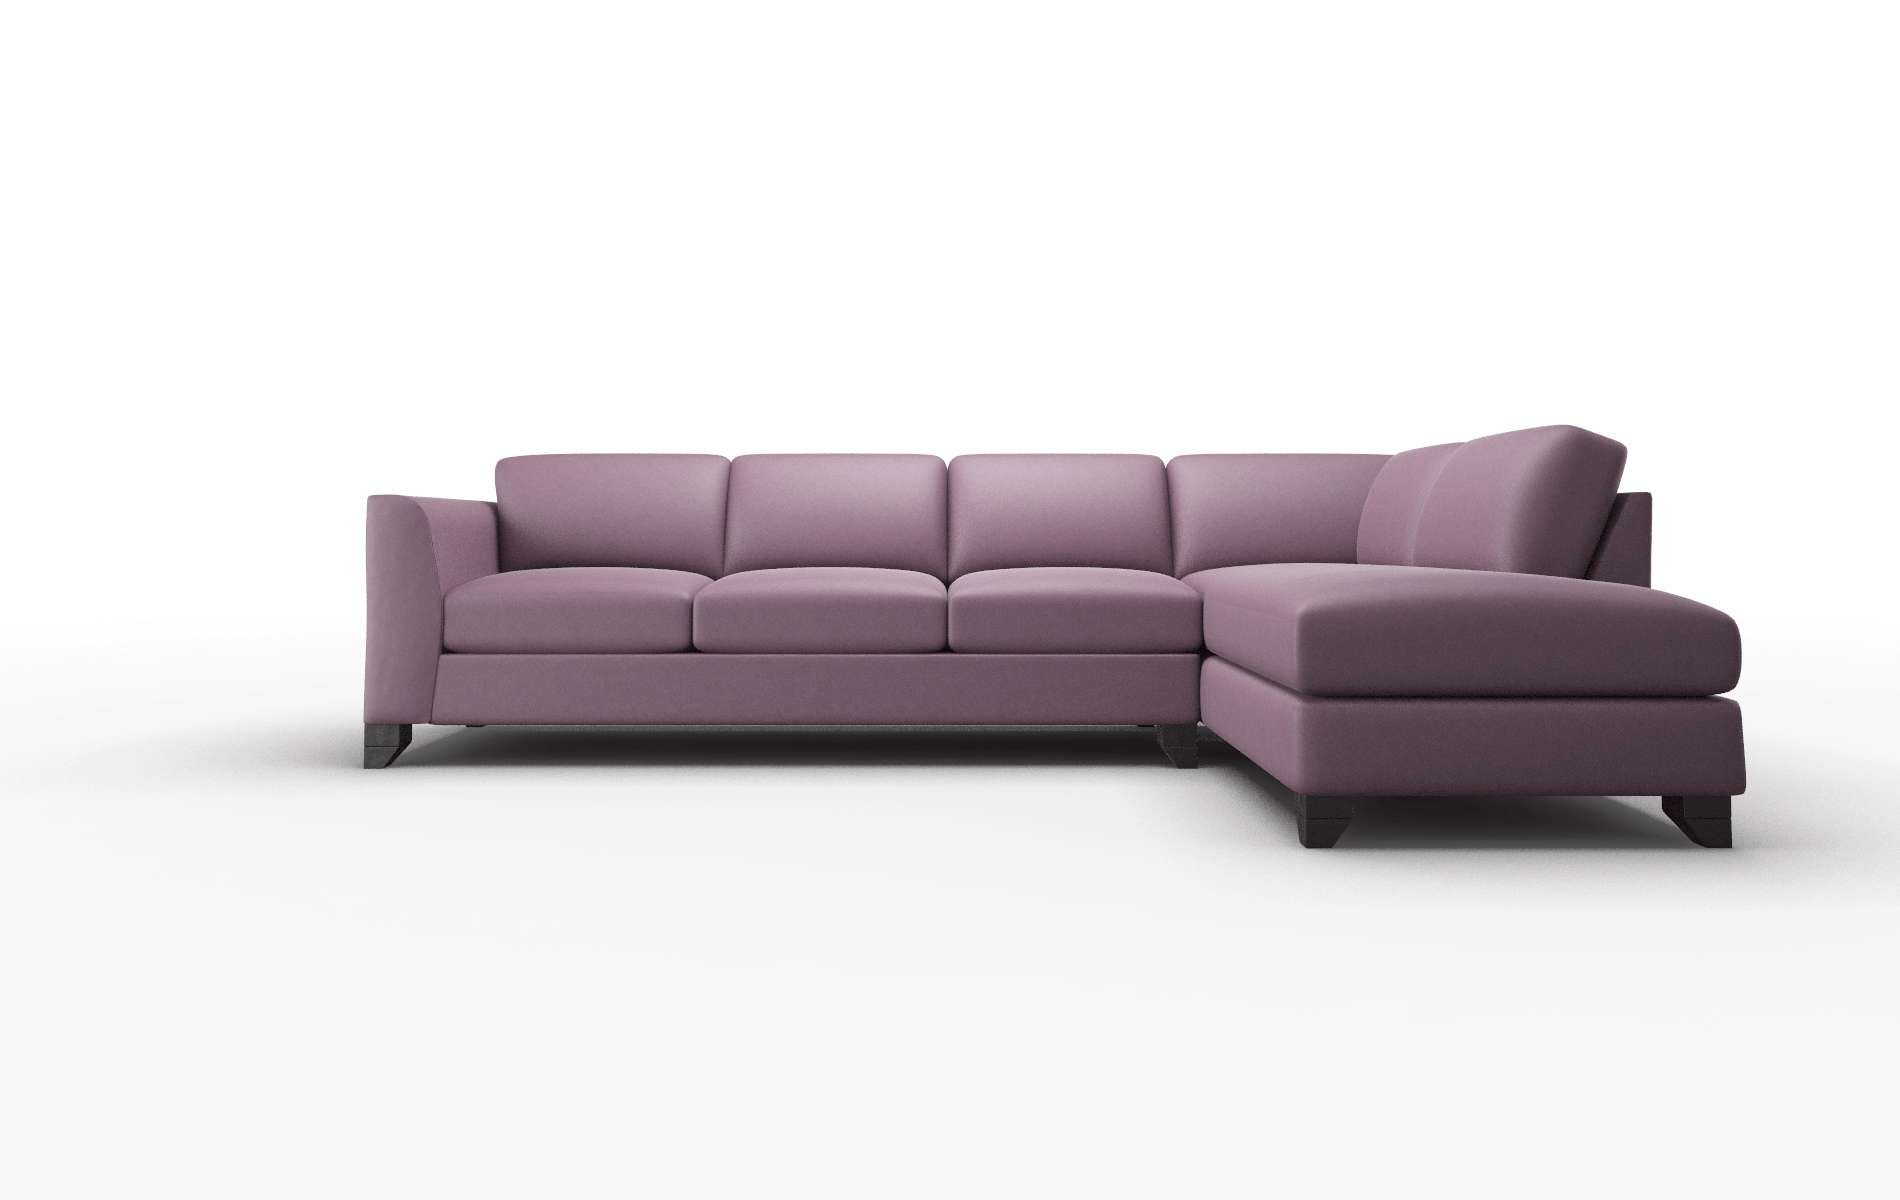 Paris Bella Aubergine Panel espresso legs 1